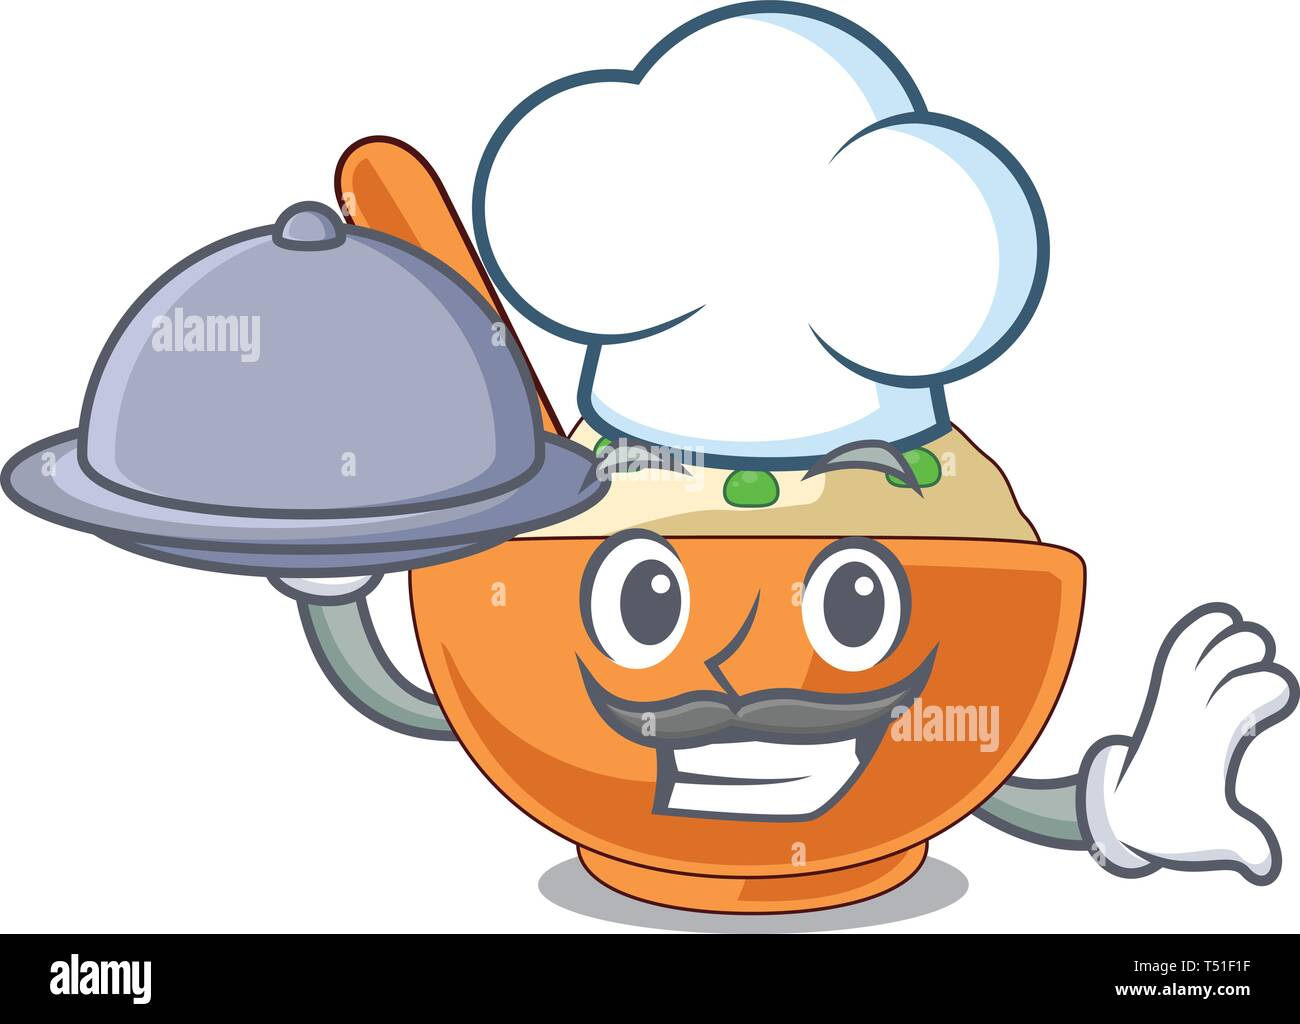 Chef with food mashed potato in the shape mascot - Stock Image